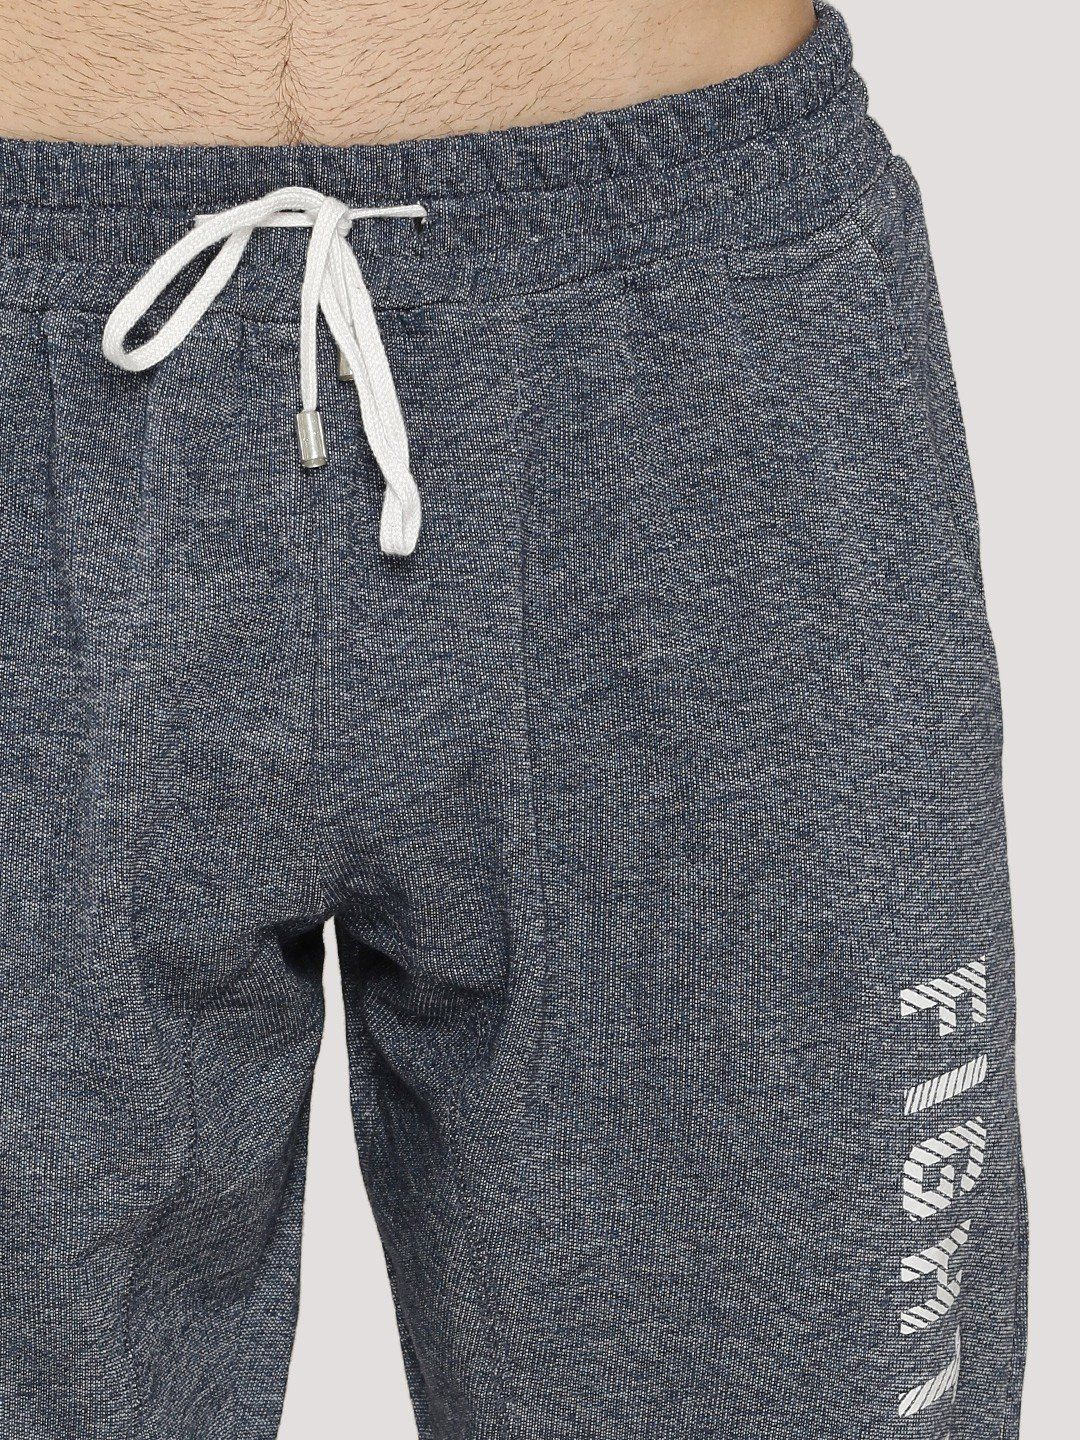 Fighting Fame Print Blue Melange Joggers - Fighting Fame  - 5